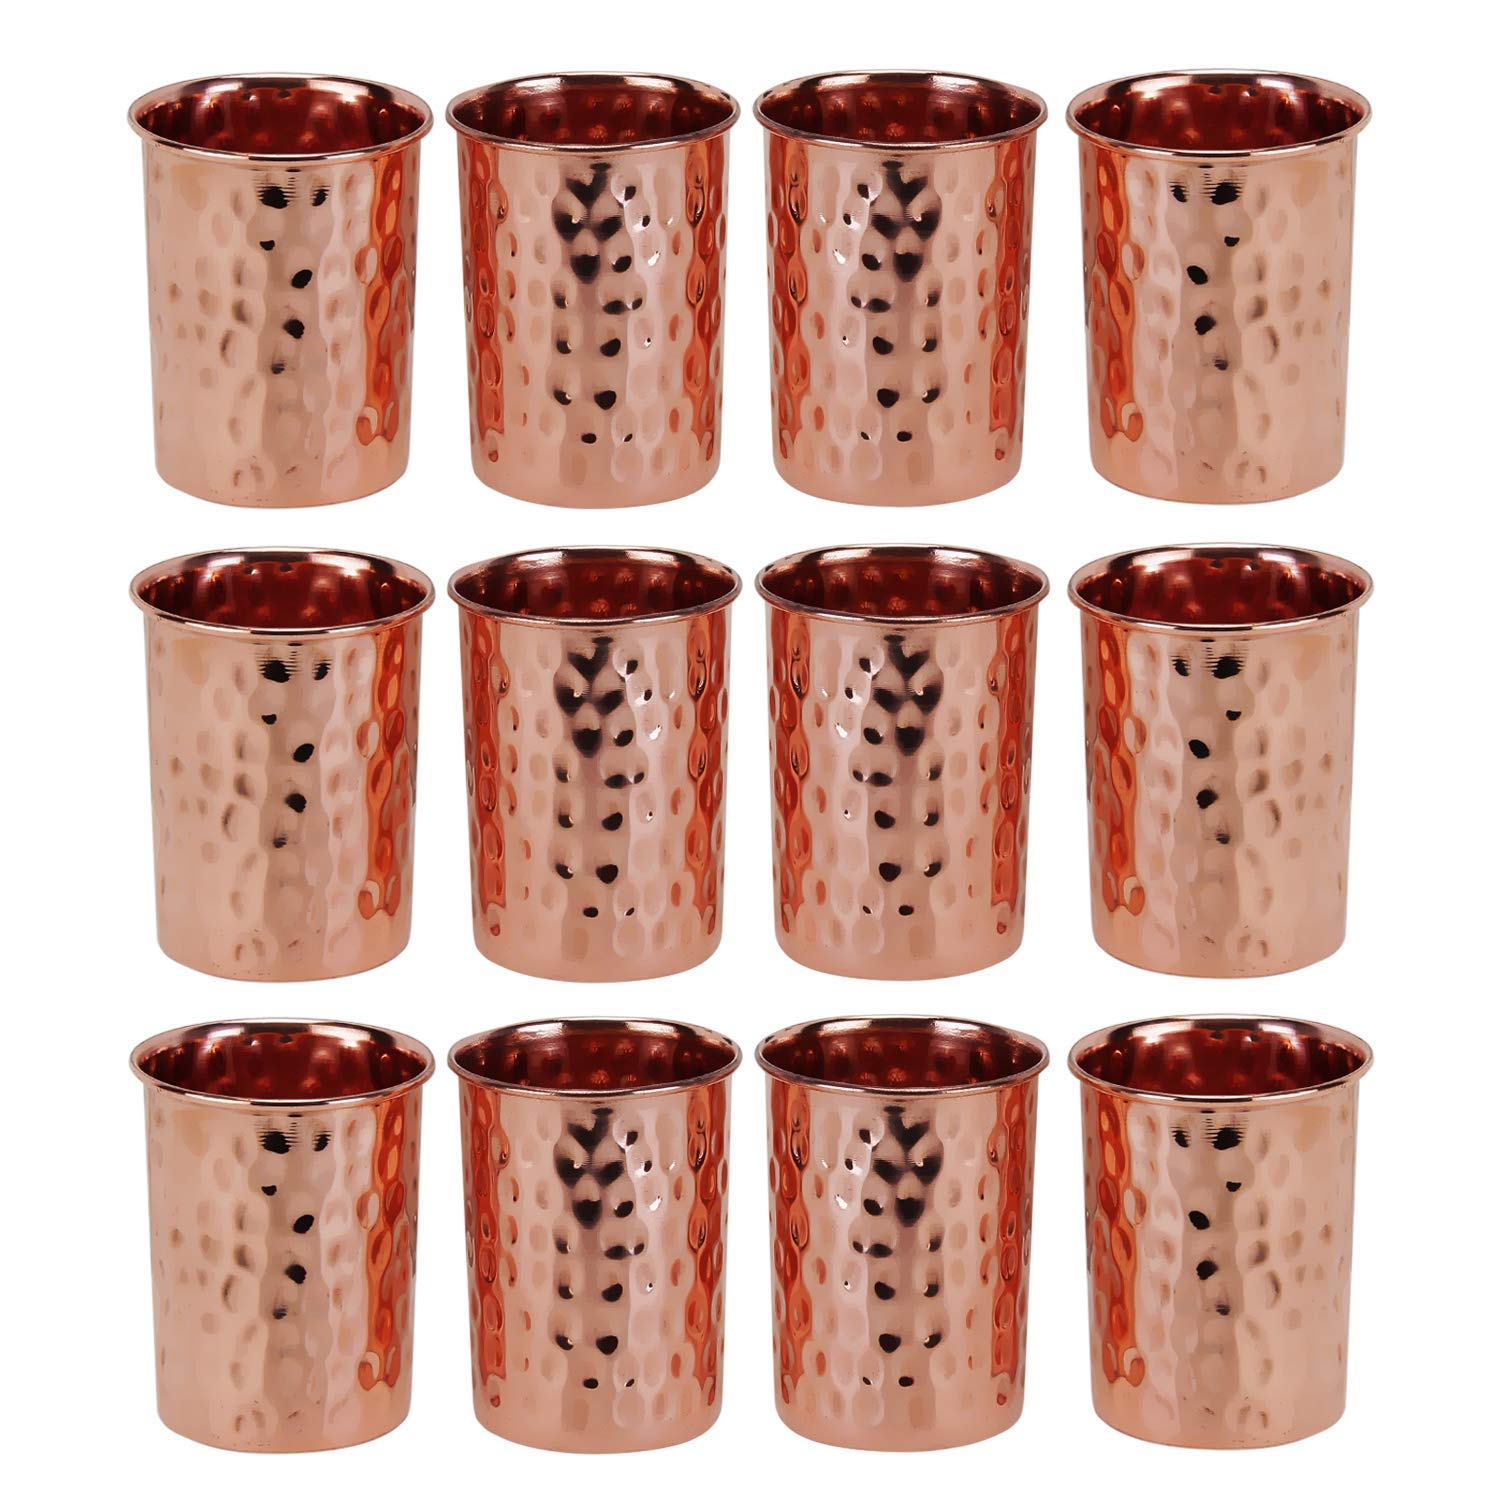 Zap Impex Pure copper hammered glasses moscow mule tumbler (Set of 12) by Zap Impex